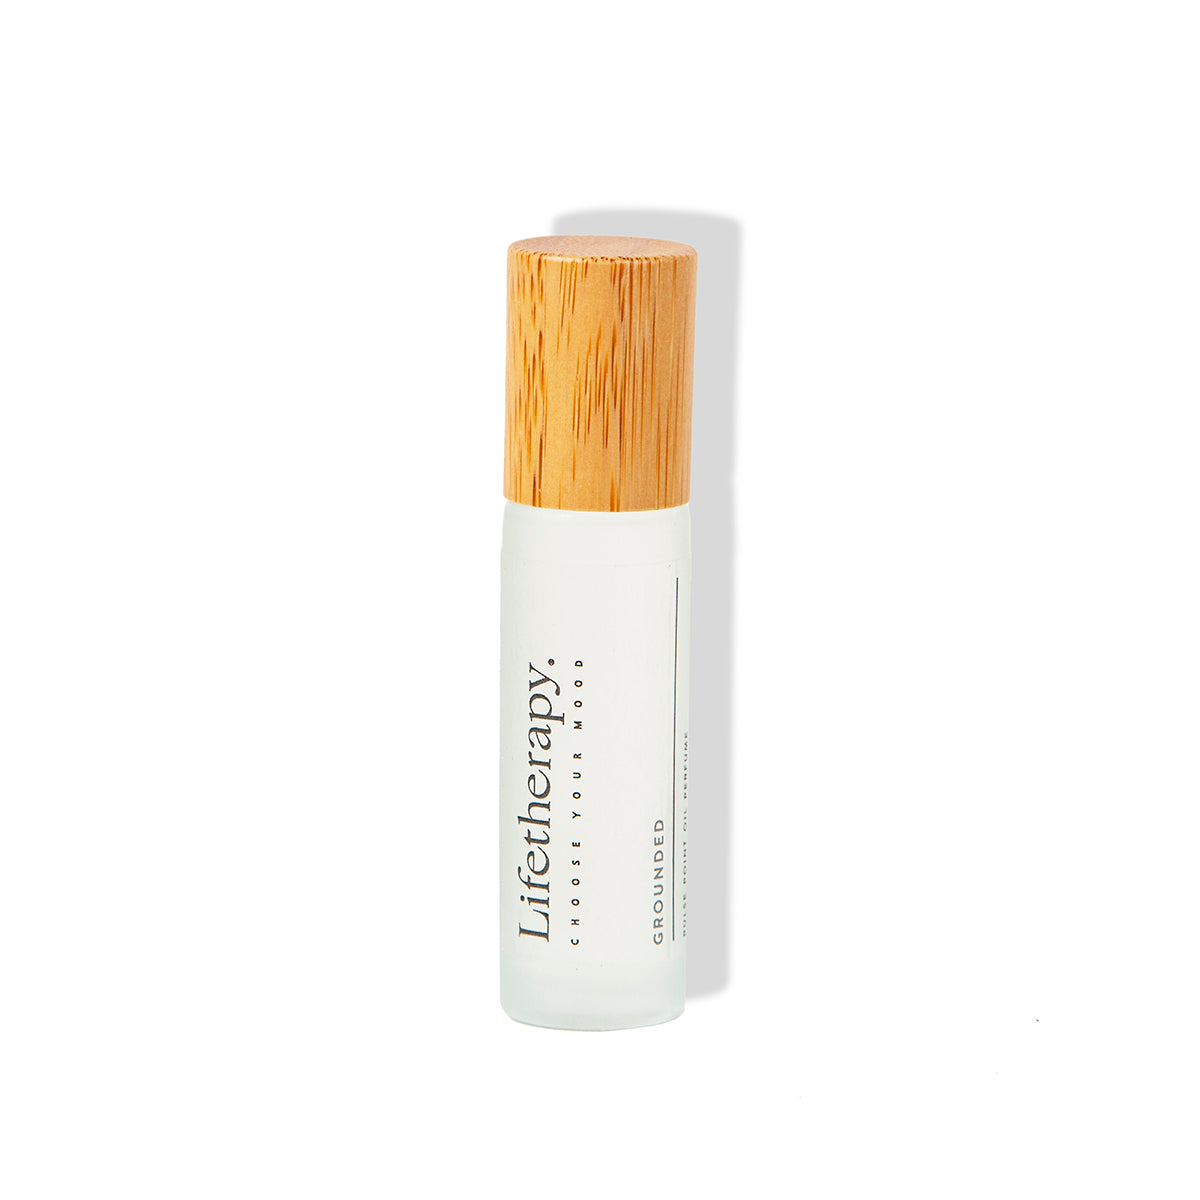 Grounded Pulse Point Oil Roll-on Perfume